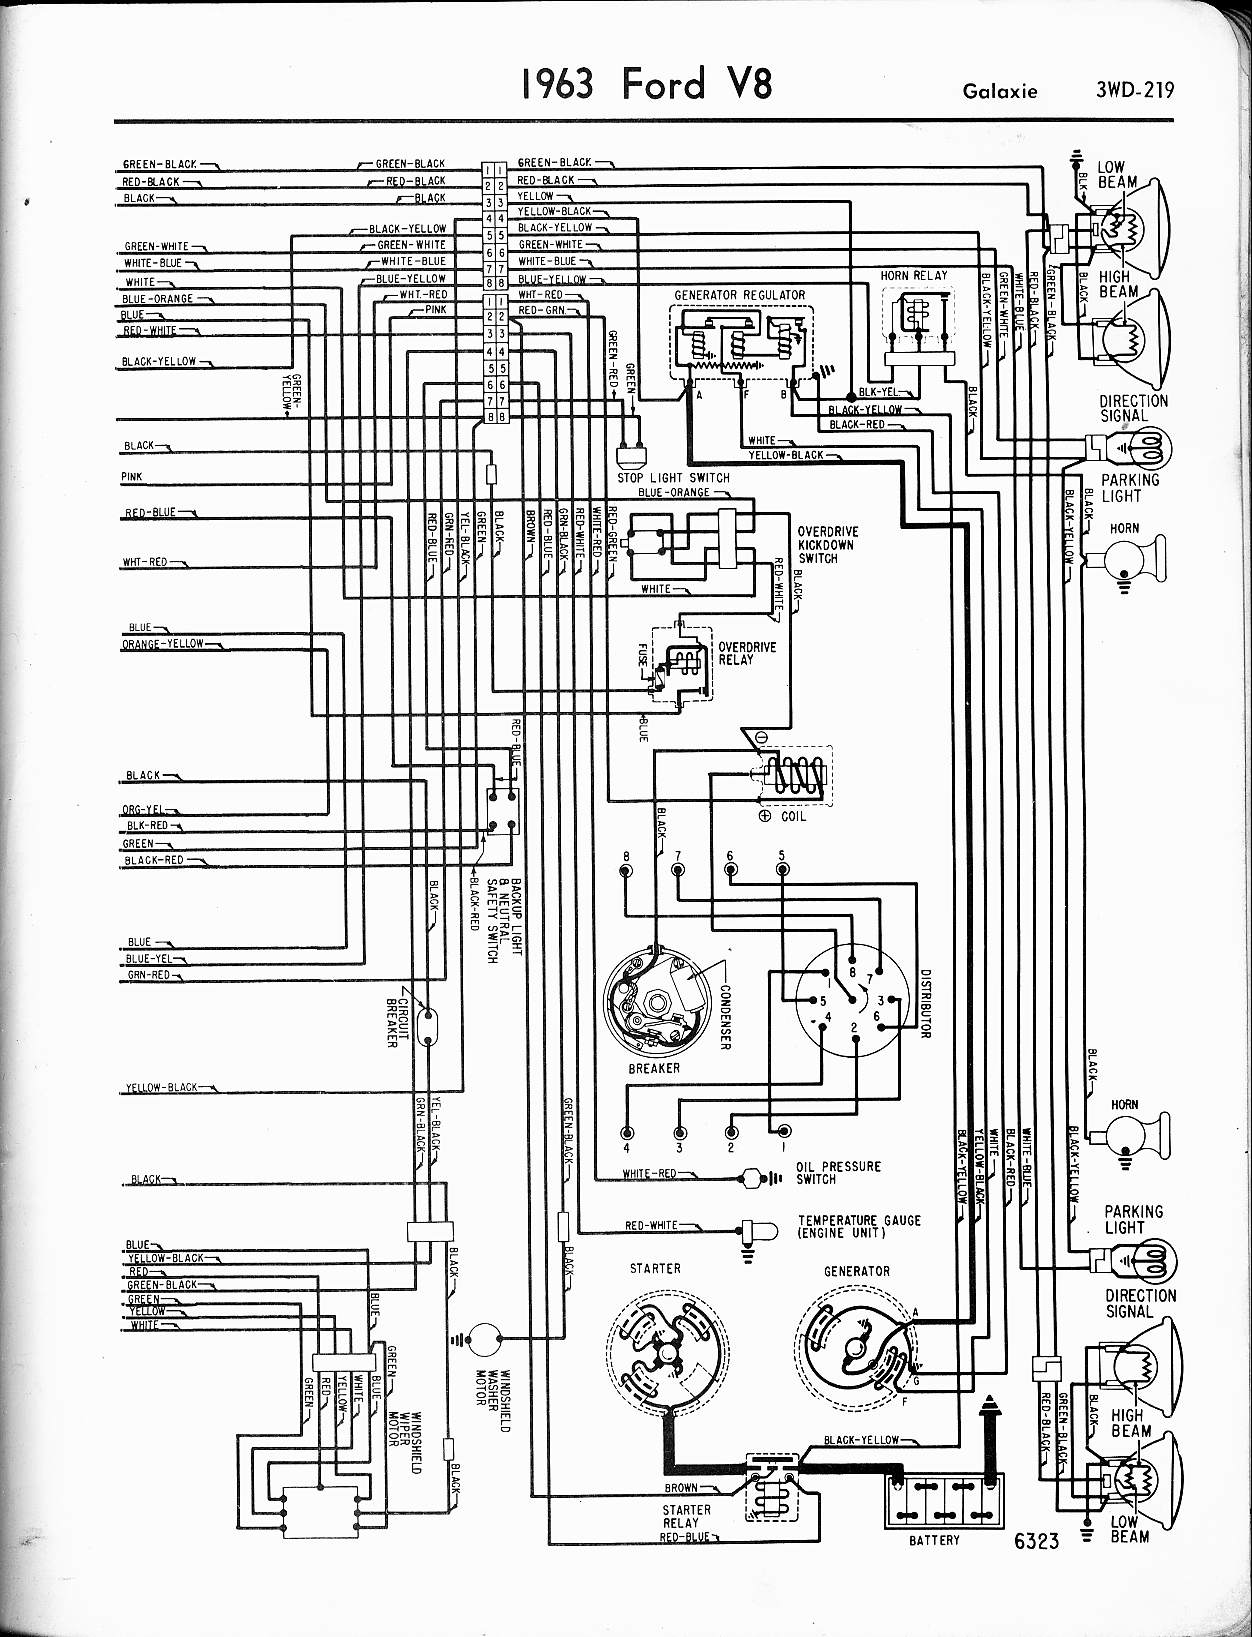 1968 F250 Wiring Diagram Manual Of Ford Alternator Galaxie Data Schema Rh Site De Joueurs Com F100